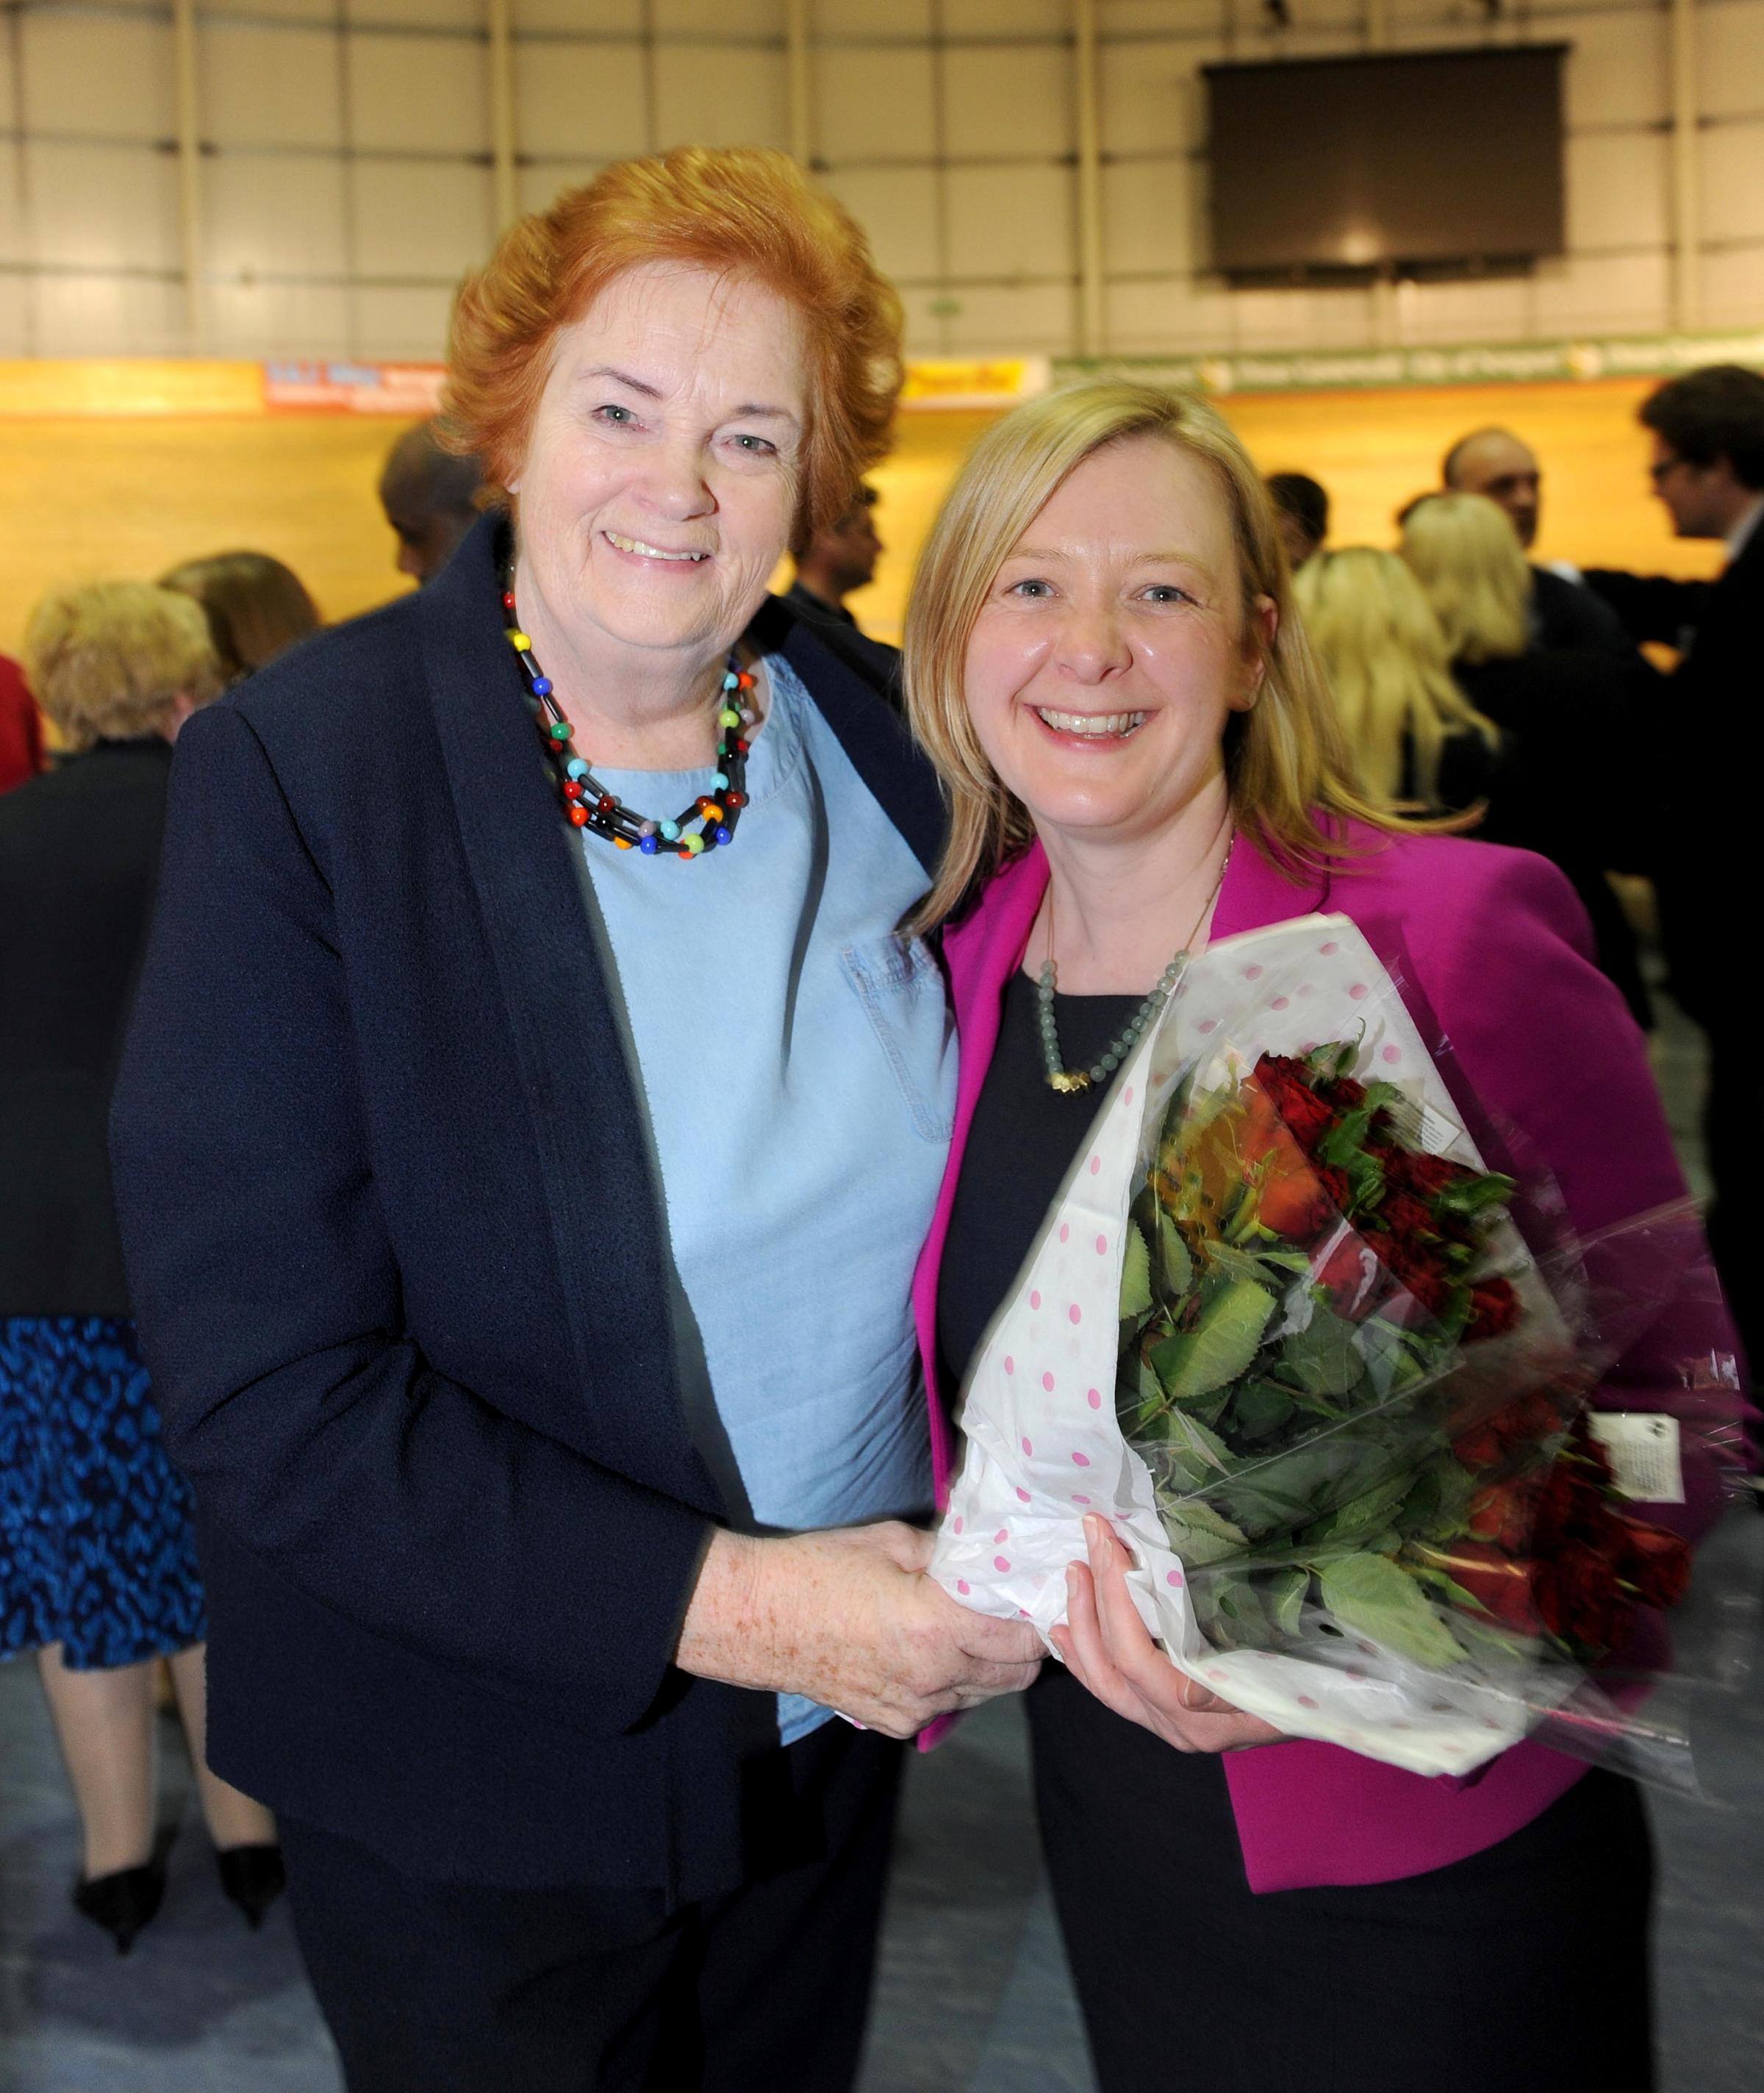 Dame Rosemary Butler, left, congratulating her replacement Jayne Bryant